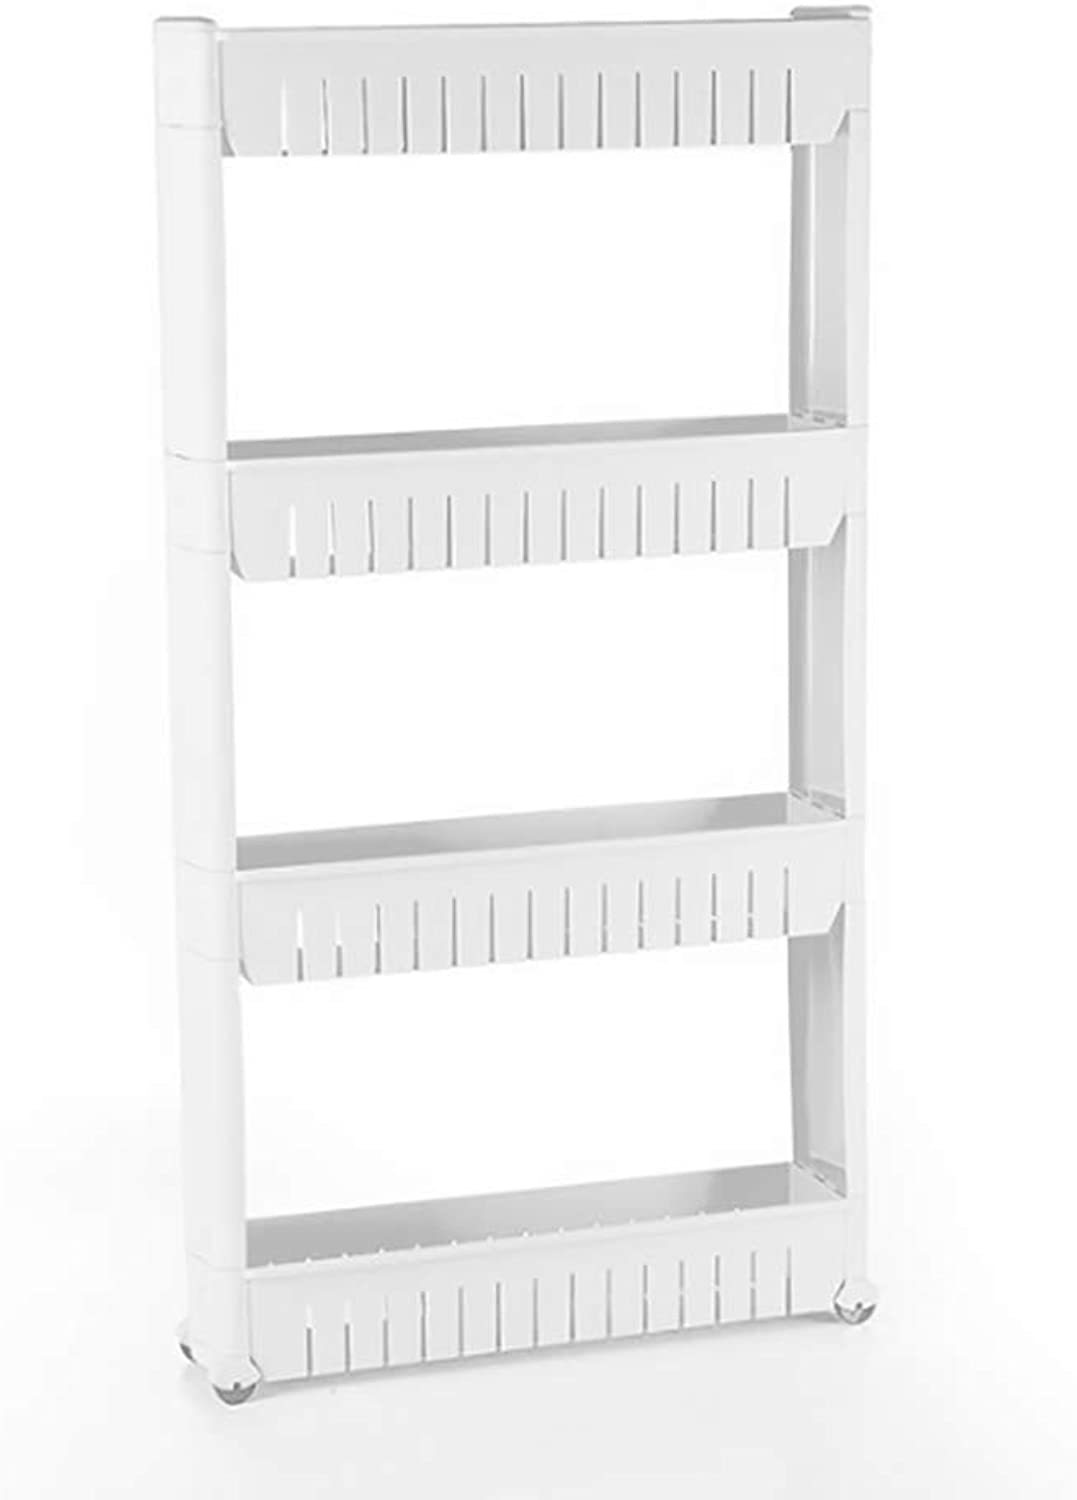 Kitchen Shelf, Bathroom Shelf, Floor Shelf, Multi-Purpose Trolley with Castors, White 3-Layer Storage Shelf 4-Layer Storage Shelf,L